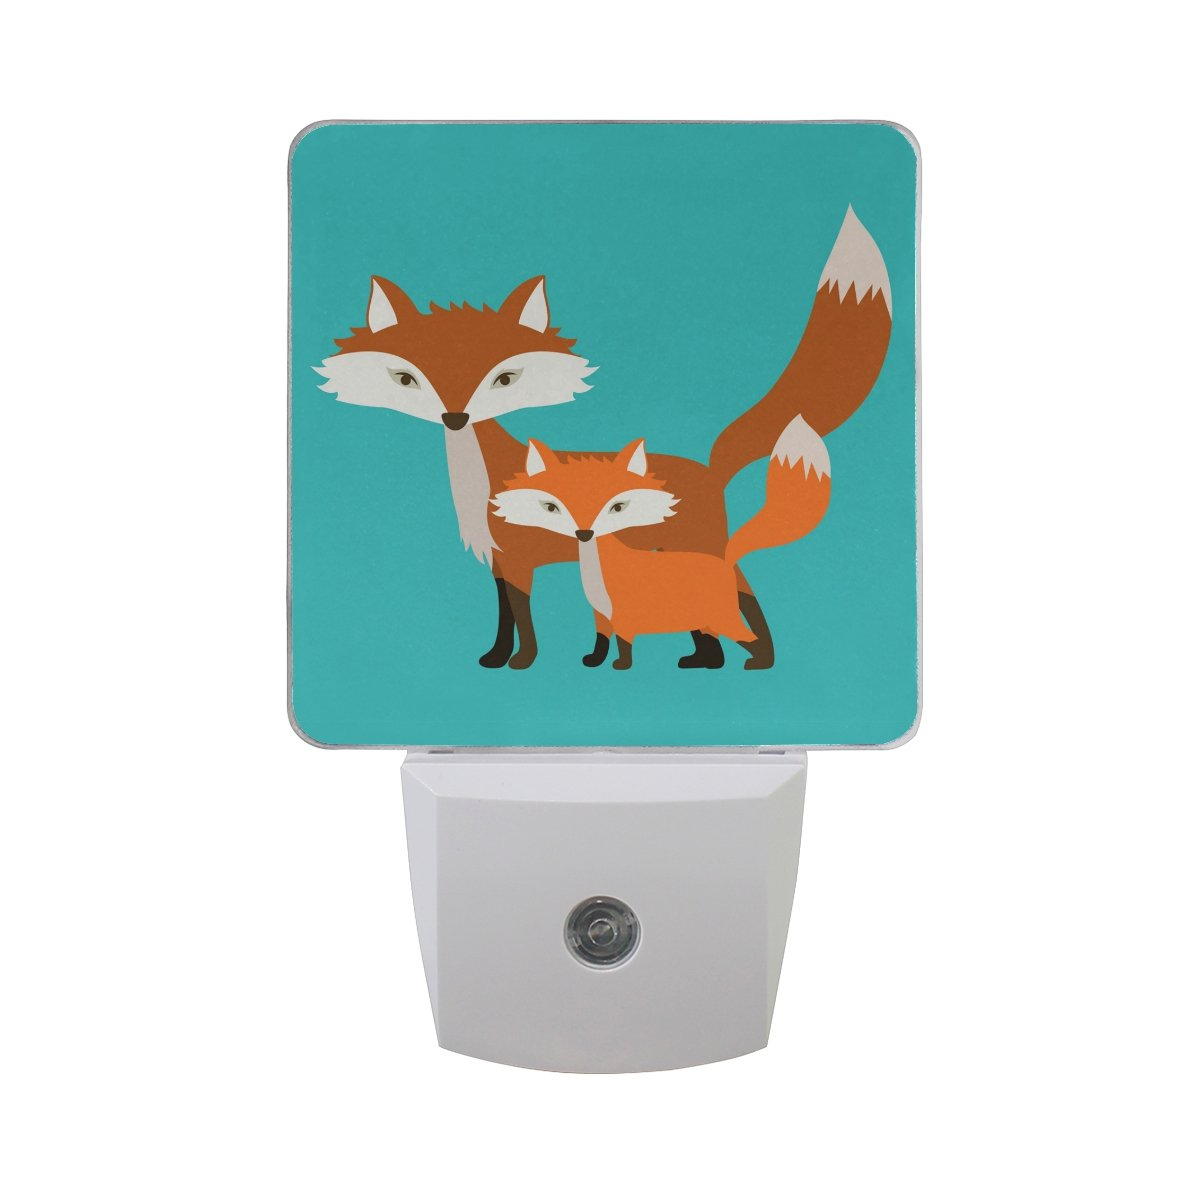 Naanle Set of 2 Animal Design Fox With Baby On Blue Background Auto Sensor LED Dusk To Dawn Night Light Plug In Indoor for Adults